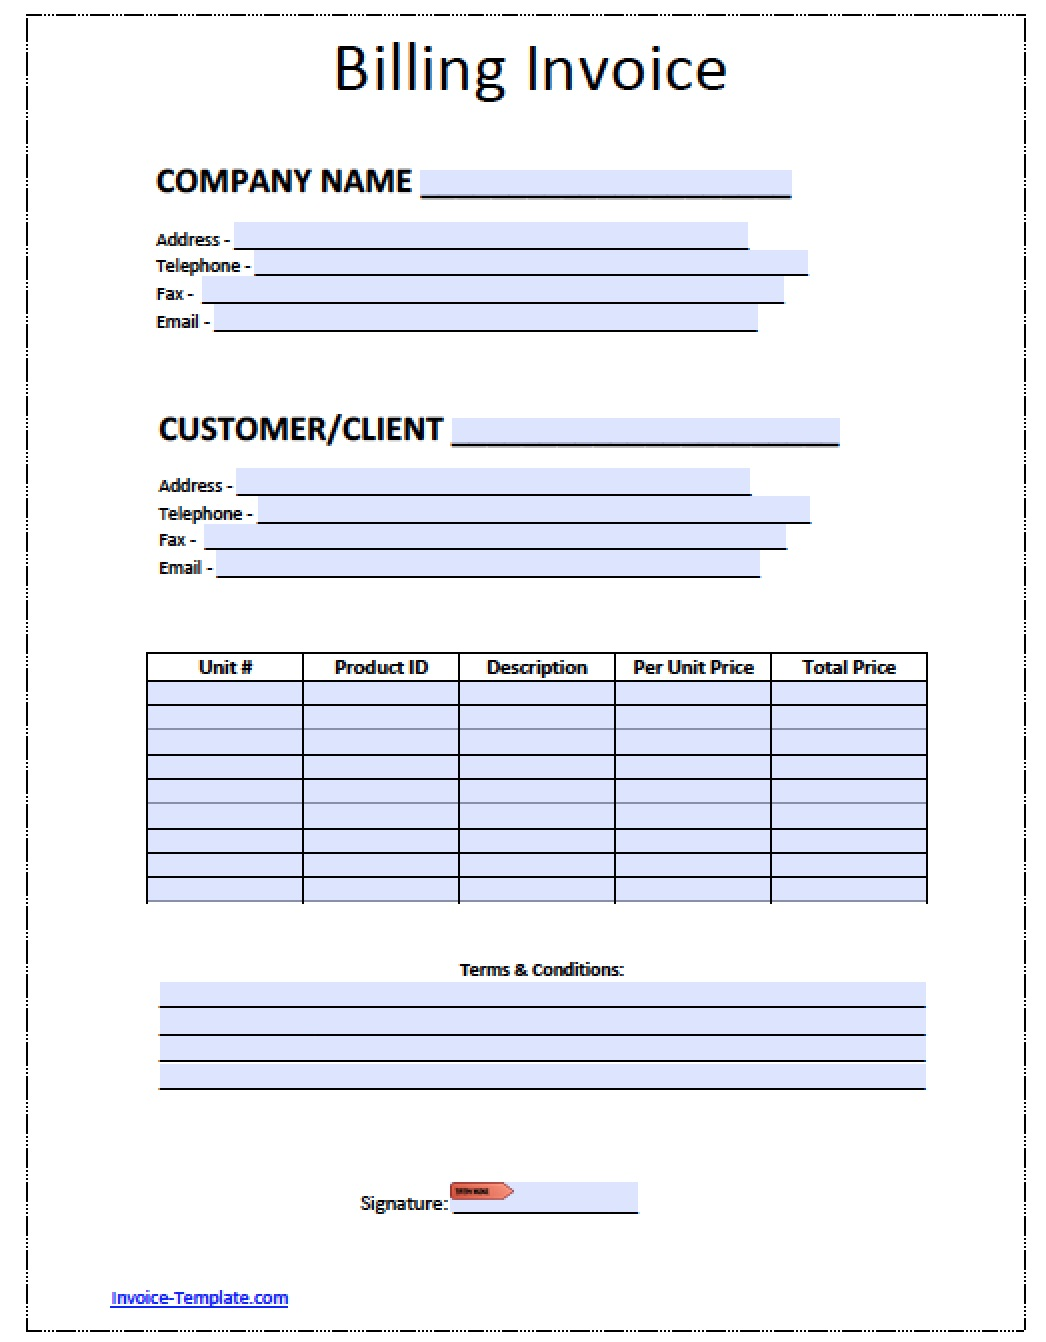 Centralasianshepherdus  Winsome Billing Invoice Invoices Faq U Cloudflare Support Billing  With Foxy Free Billing Invoice Template  Excel  Pdf  Word Doc  Billing With Cool What Is Trust Receipt Loan Also Receipts In Spanish In Addition Receiving Receipt Sample And Missing Receipt Form Template As Well As Hotels Com Receipt Additionally Transaction Receipt From Happytomco With Centralasianshepherdus  Foxy Billing Invoice Invoices Faq U Cloudflare Support Billing  With Cool Free Billing Invoice Template  Excel  Pdf  Word Doc  Billing And Winsome What Is Trust Receipt Loan Also Receipts In Spanish In Addition Receiving Receipt Sample From Happytomco